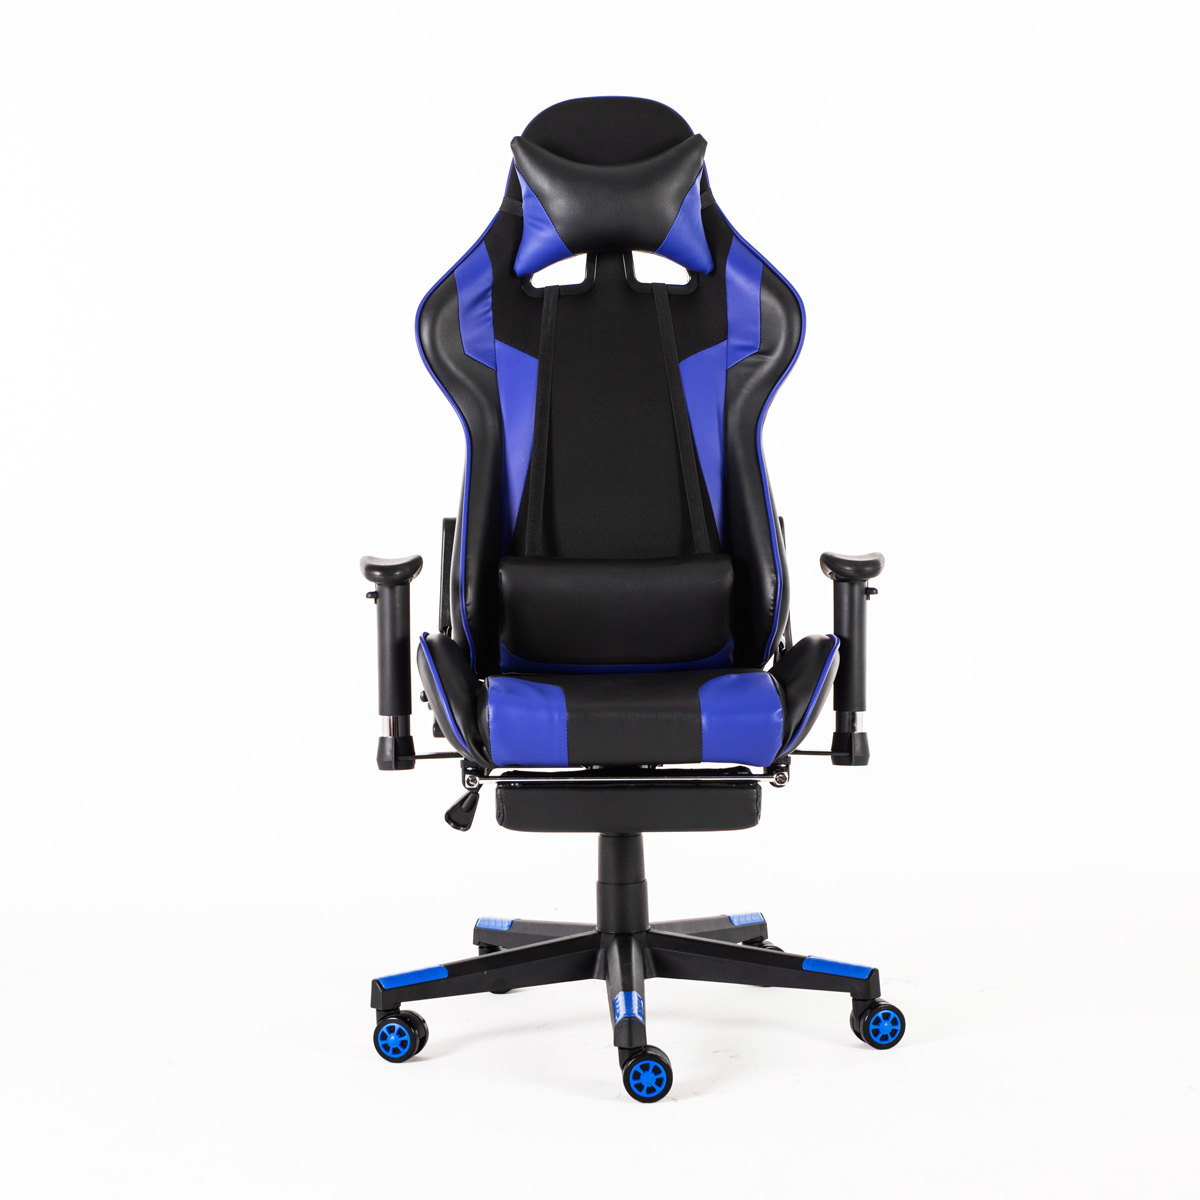 180° Gaming Chair Electrified Internet Armchair Ergonomic Computer Chair Footrest Cafe WCG Computer Comfortable Lying Home Chair